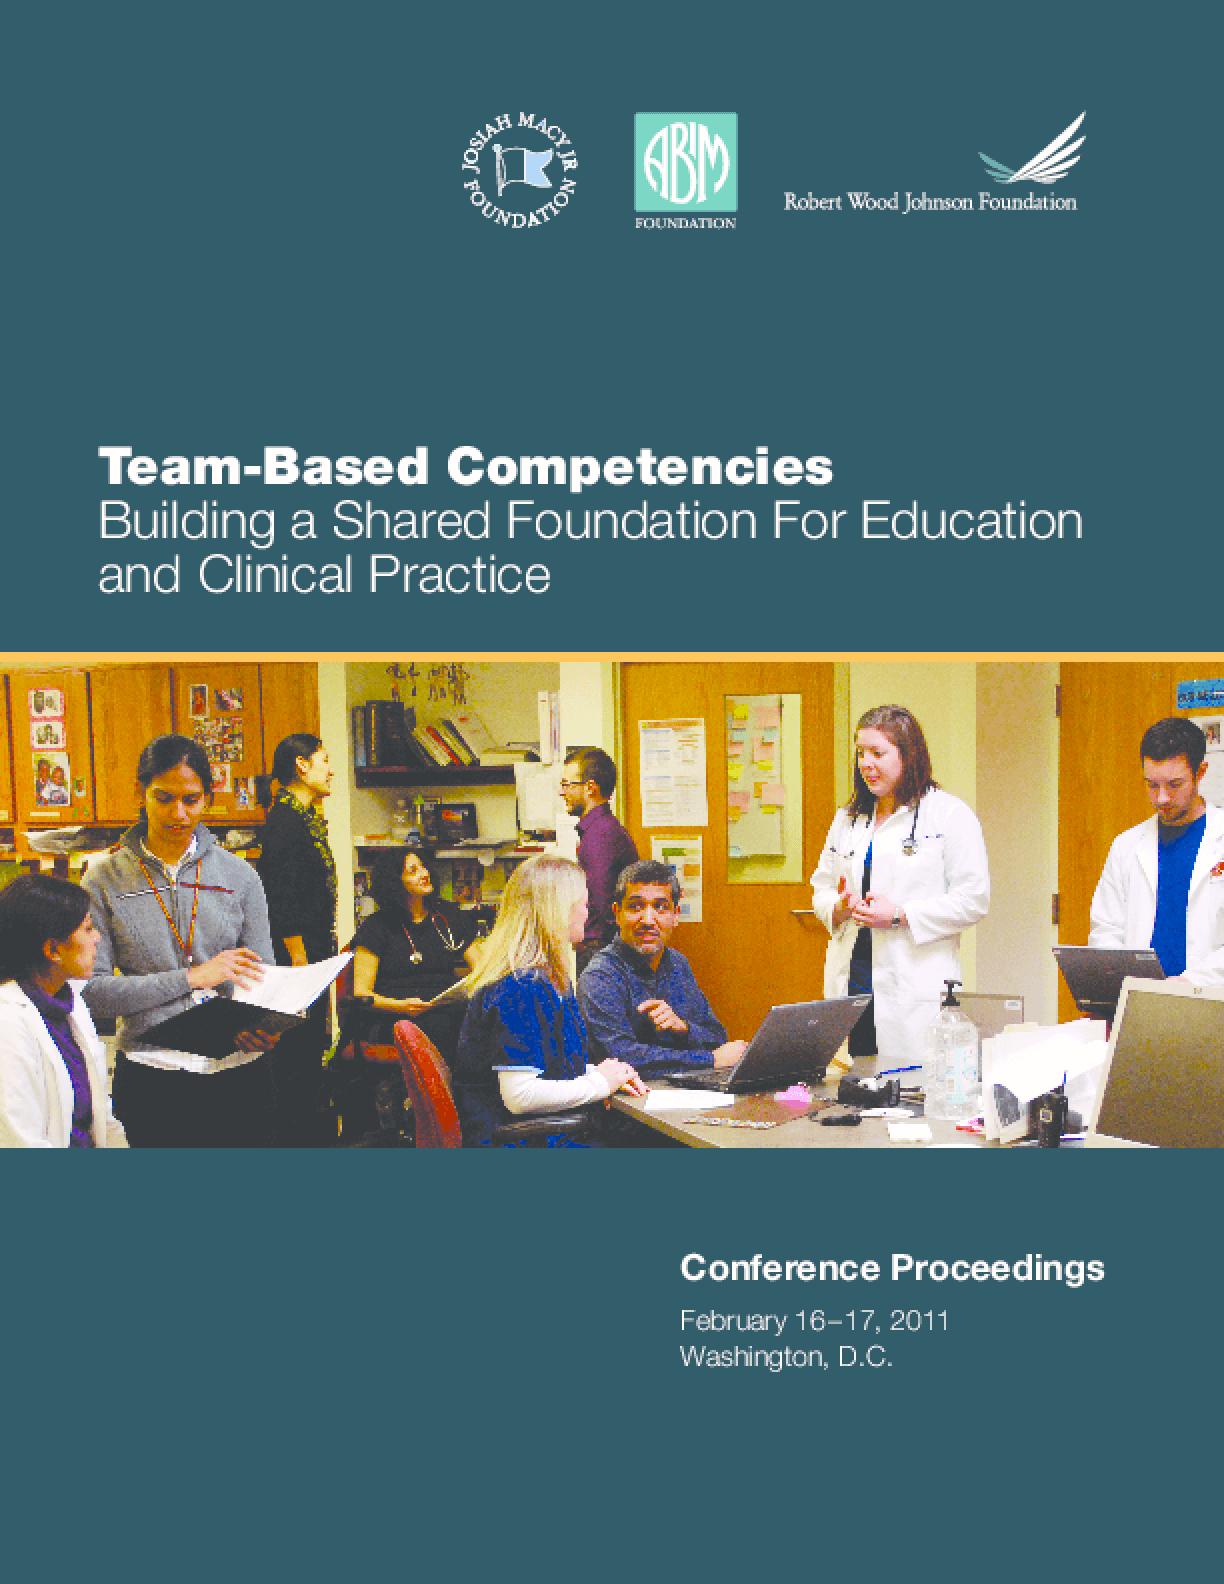 Team-Based Competencies: Building a Shared Foundation for Education and Clinical Practice